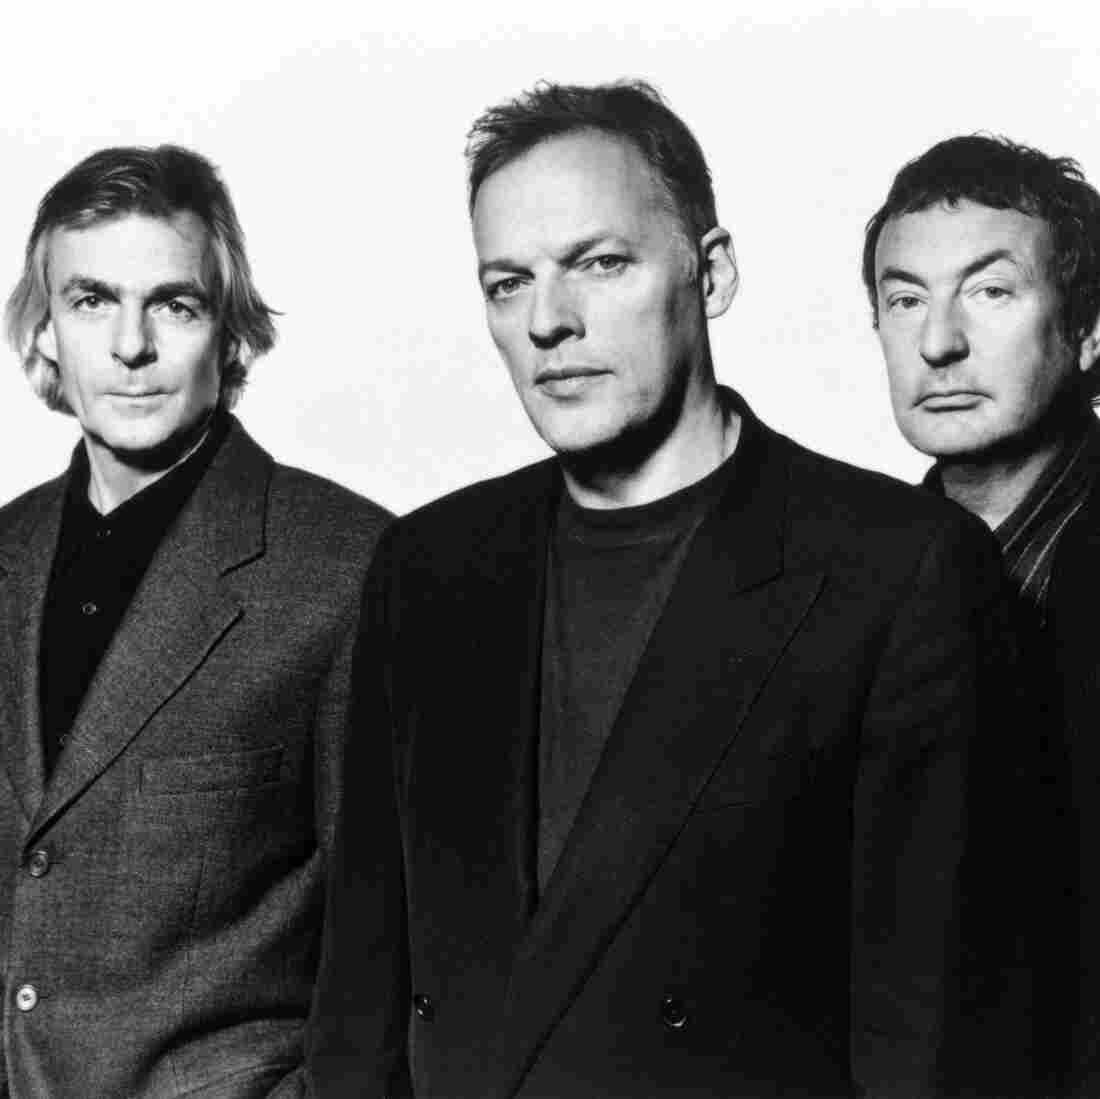 Pink Floyd's new album is titled The Endless River.